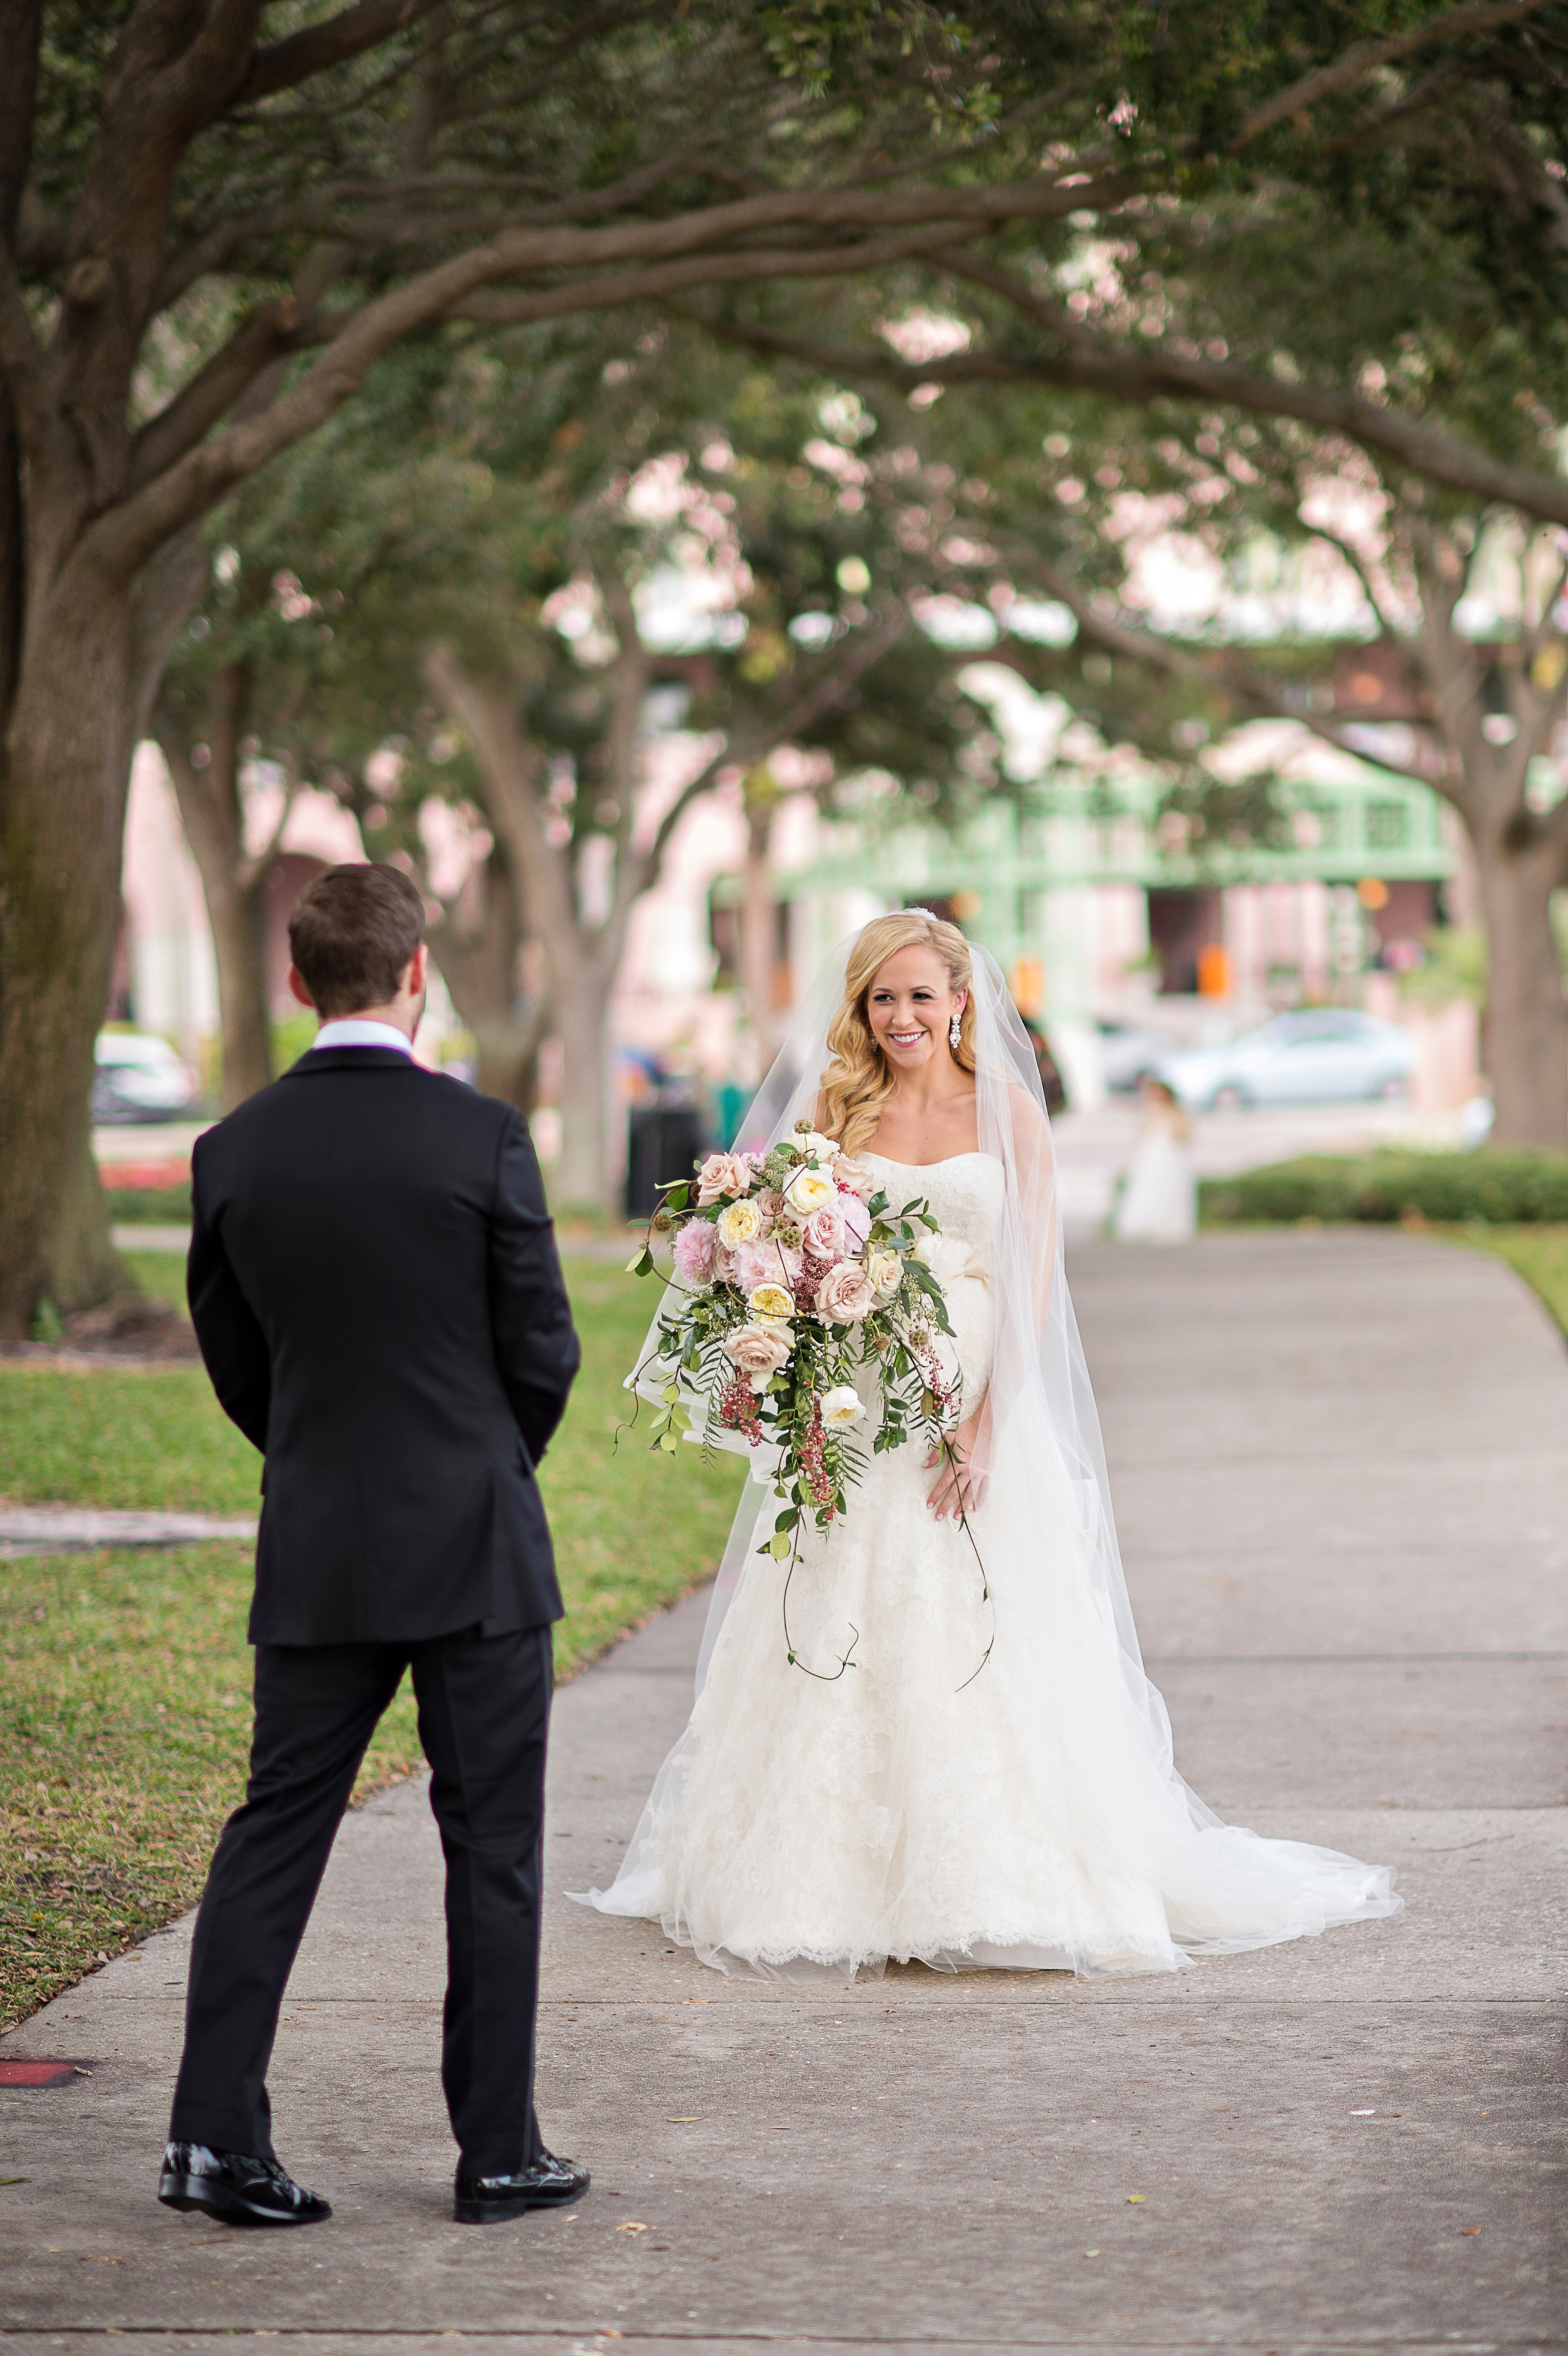 kristenweaver.com | St. Petersburg Museum of Fine Arts Wedding | Kristen Weaver Photography | Florida Wedding Photographer